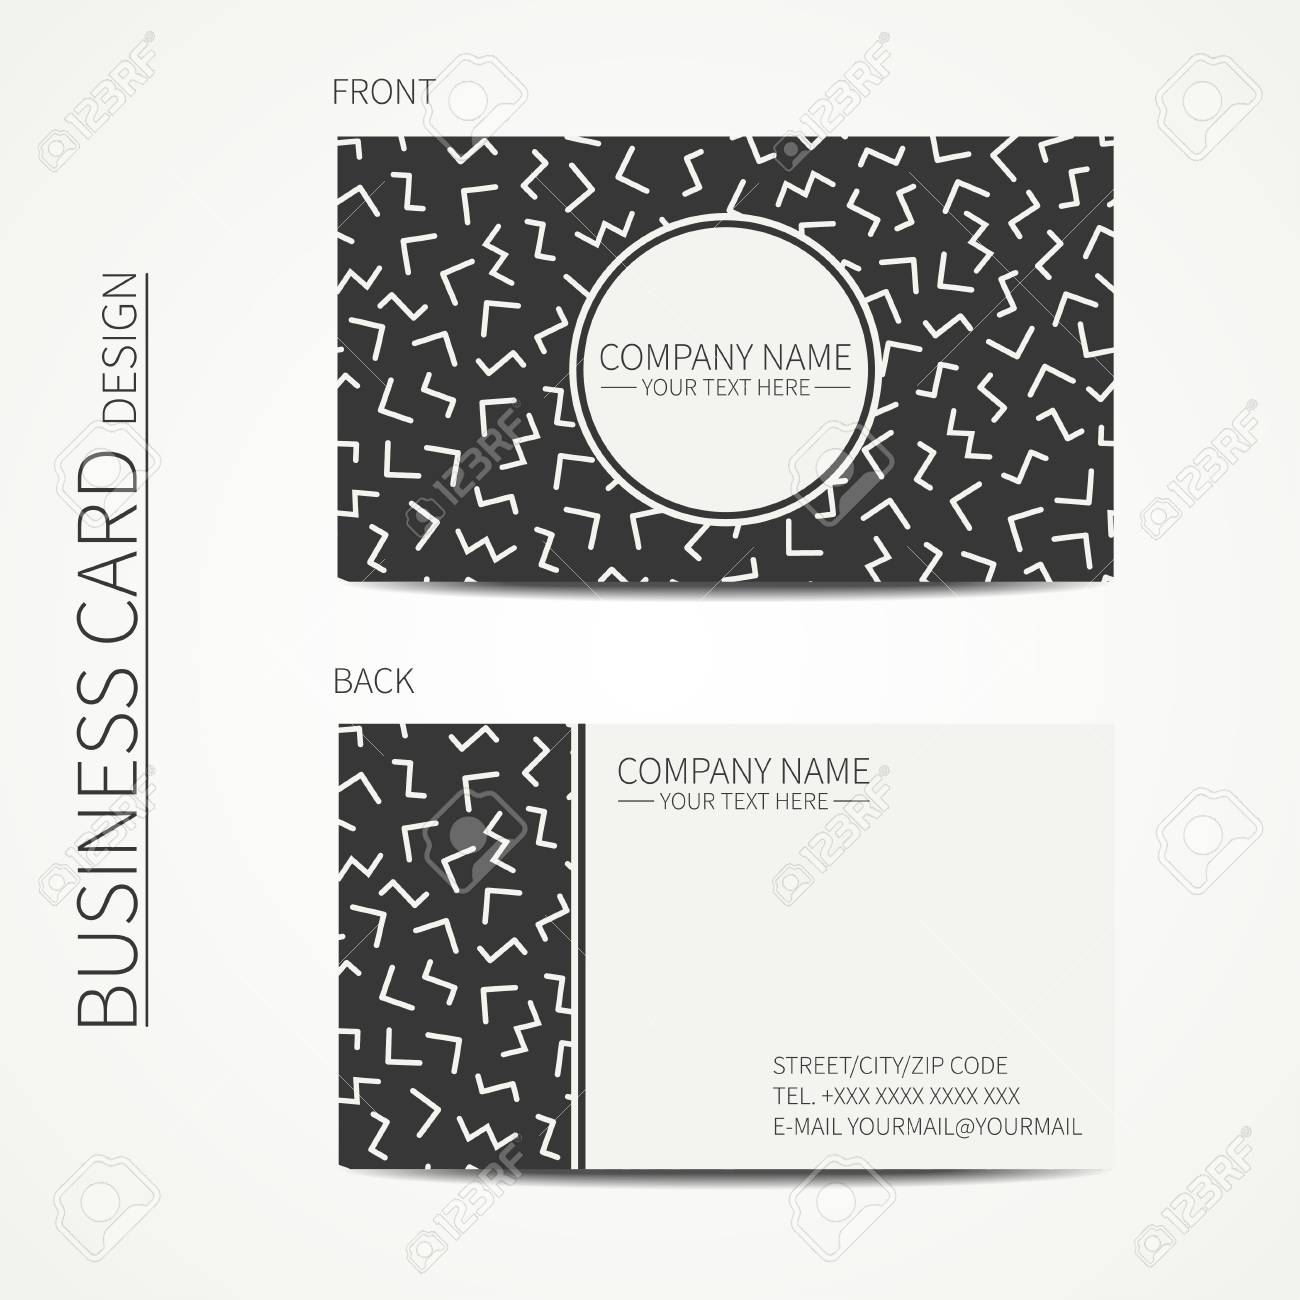 Simple Business Card Design. Memphis Style. Template. Black And ...